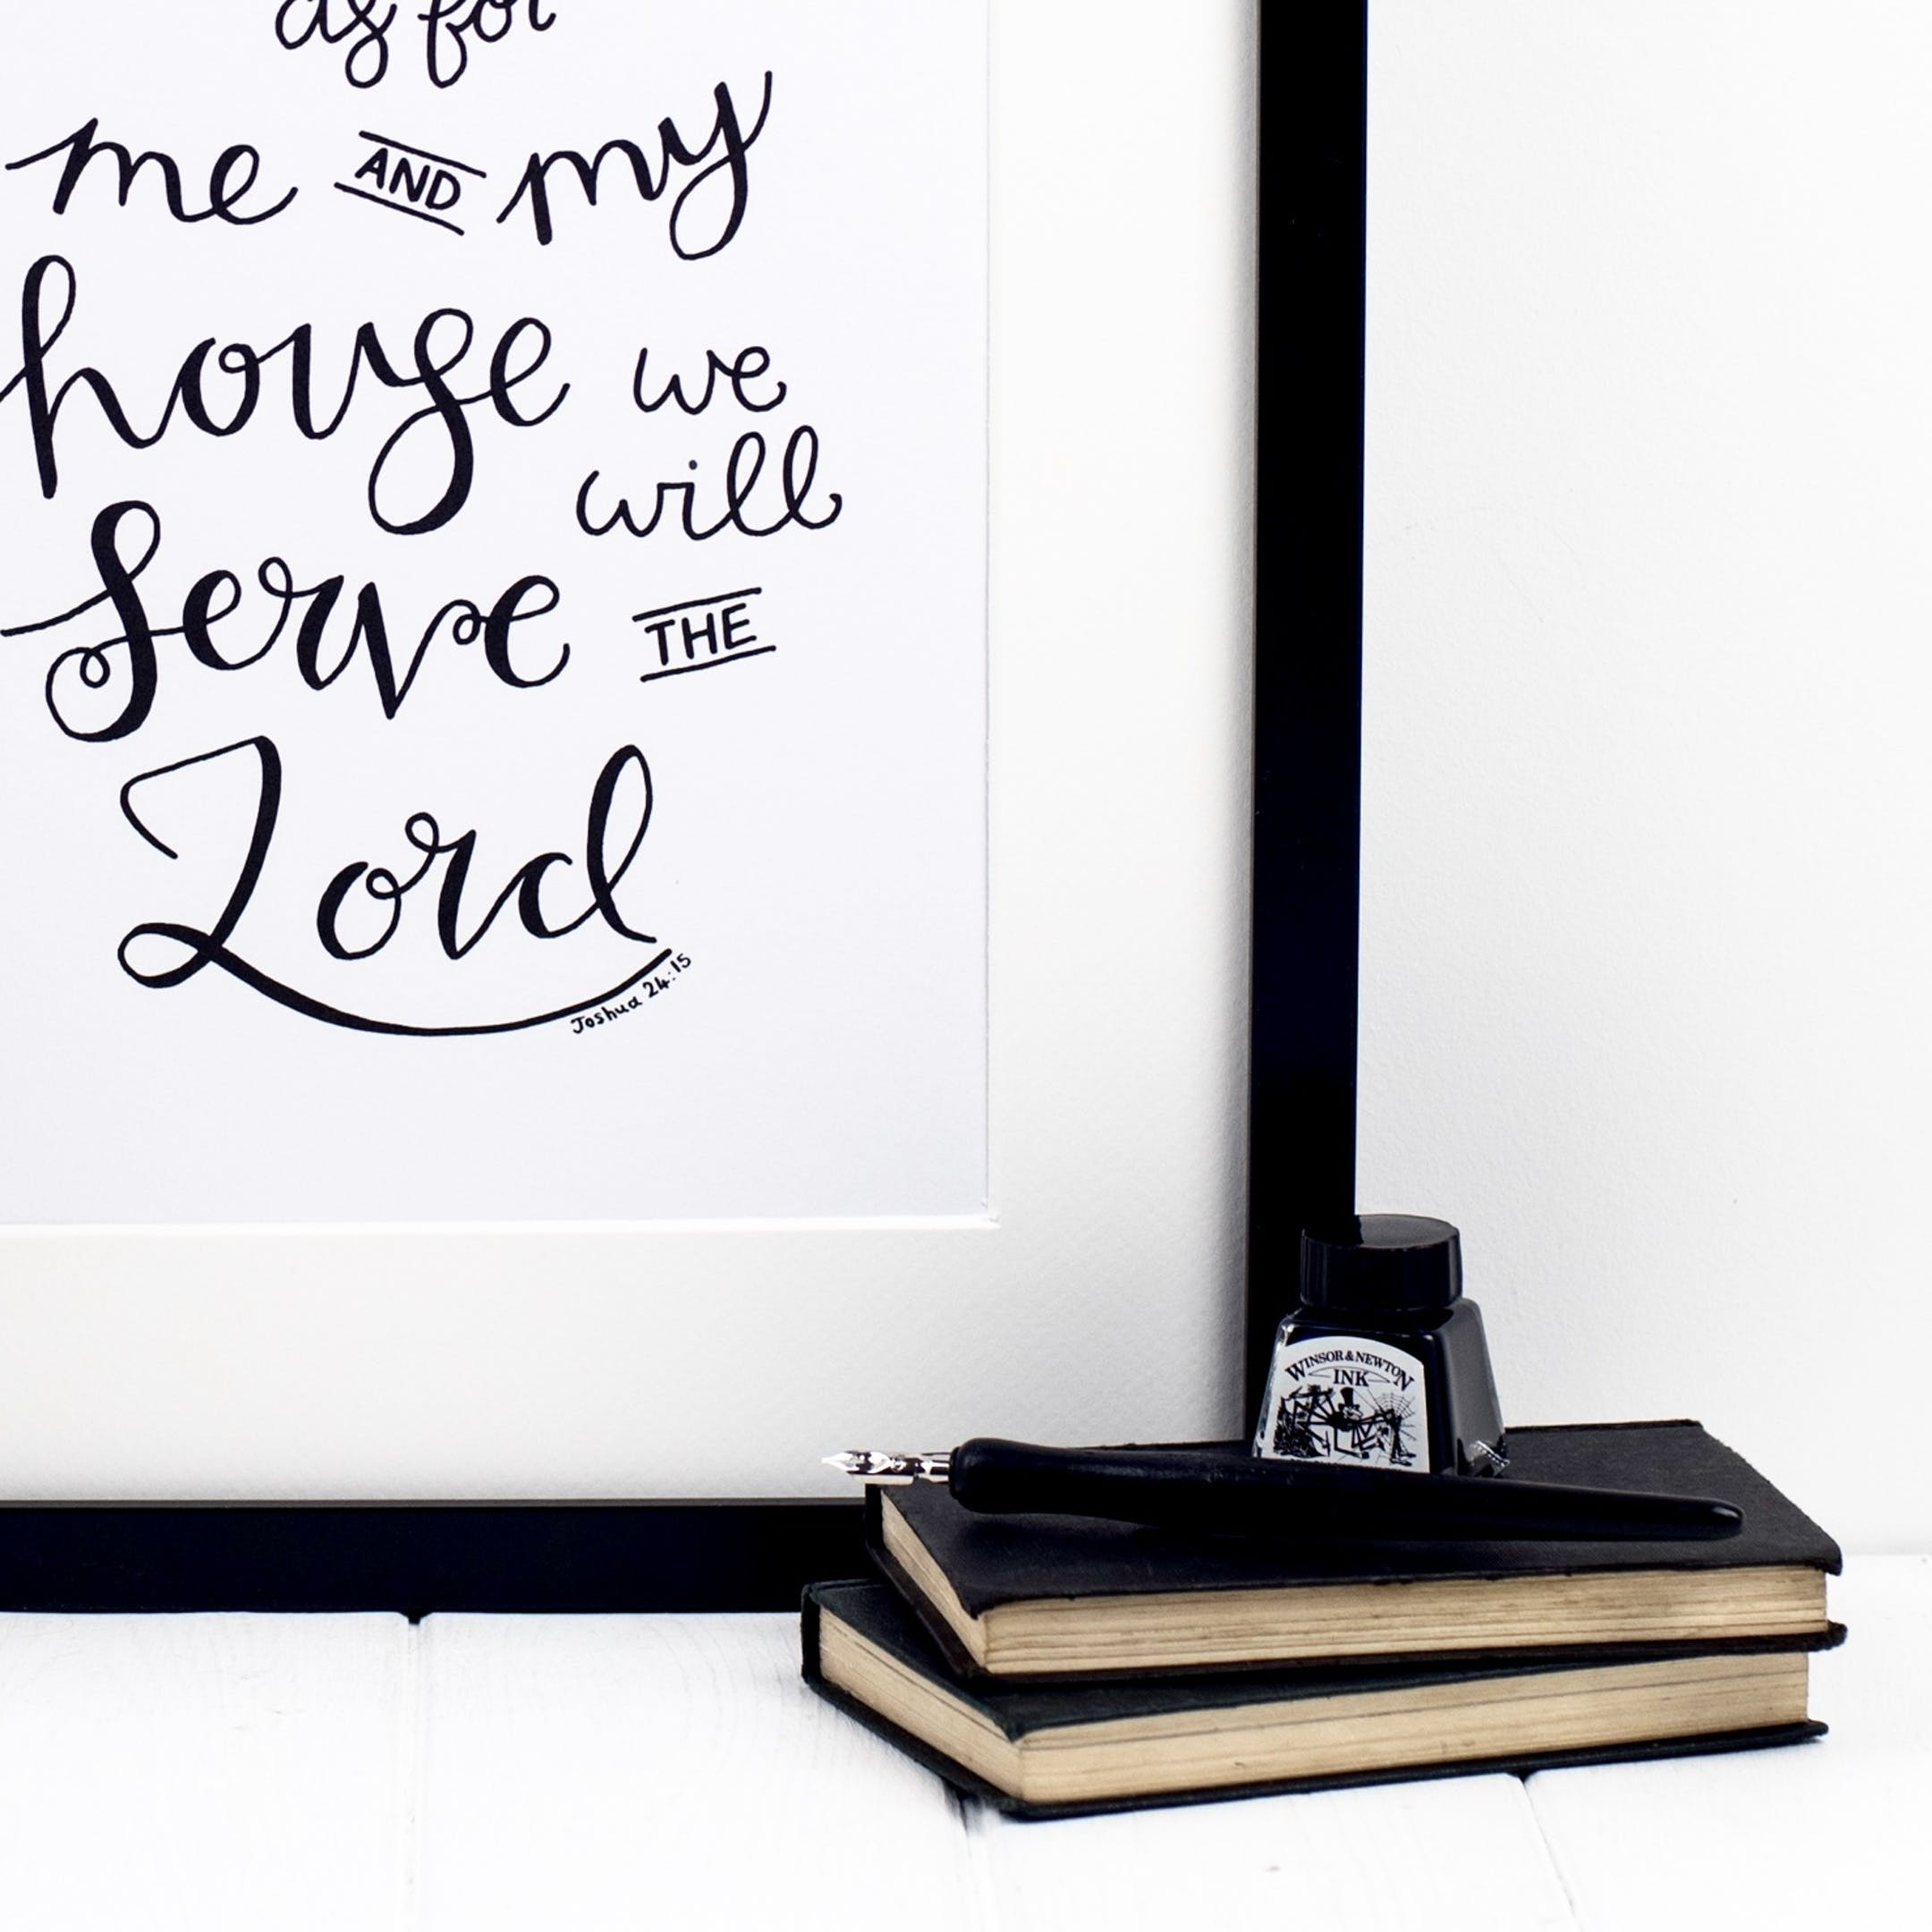 But As For Me And My House - Joshua 24:15 Print - Izzy and Pop